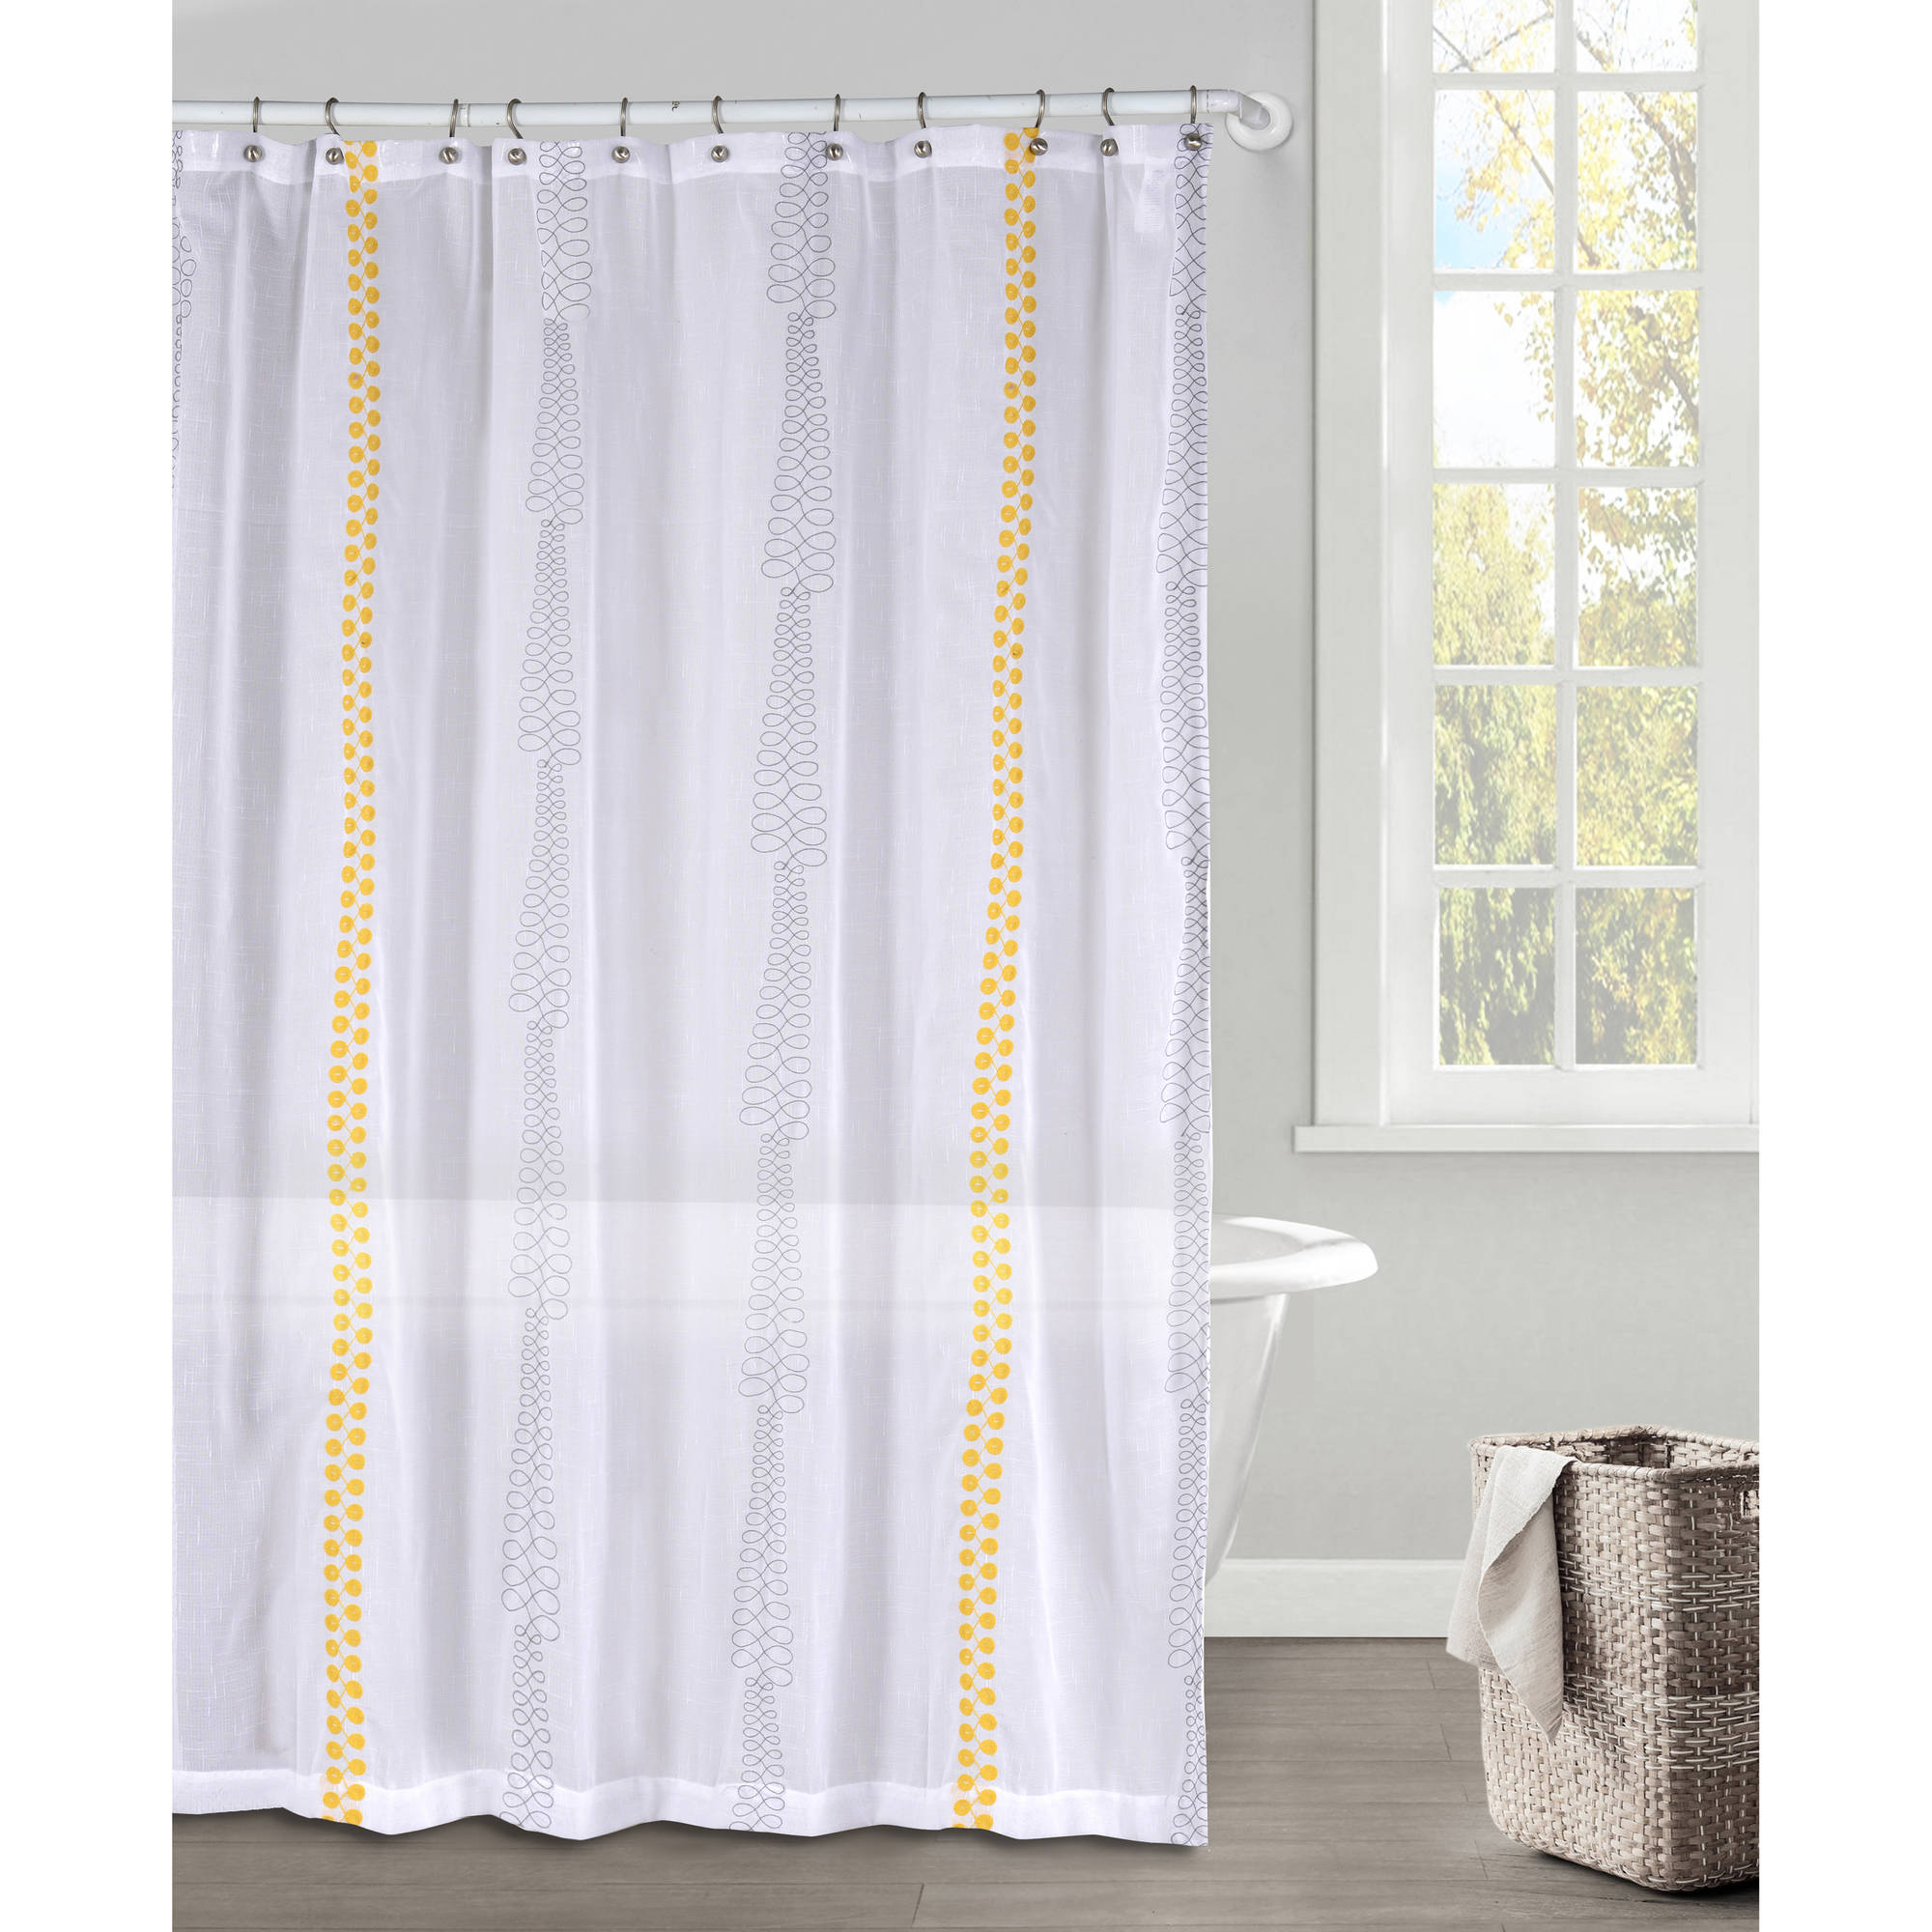 Kettering Braid Emb Faux Linen Shower Curtain